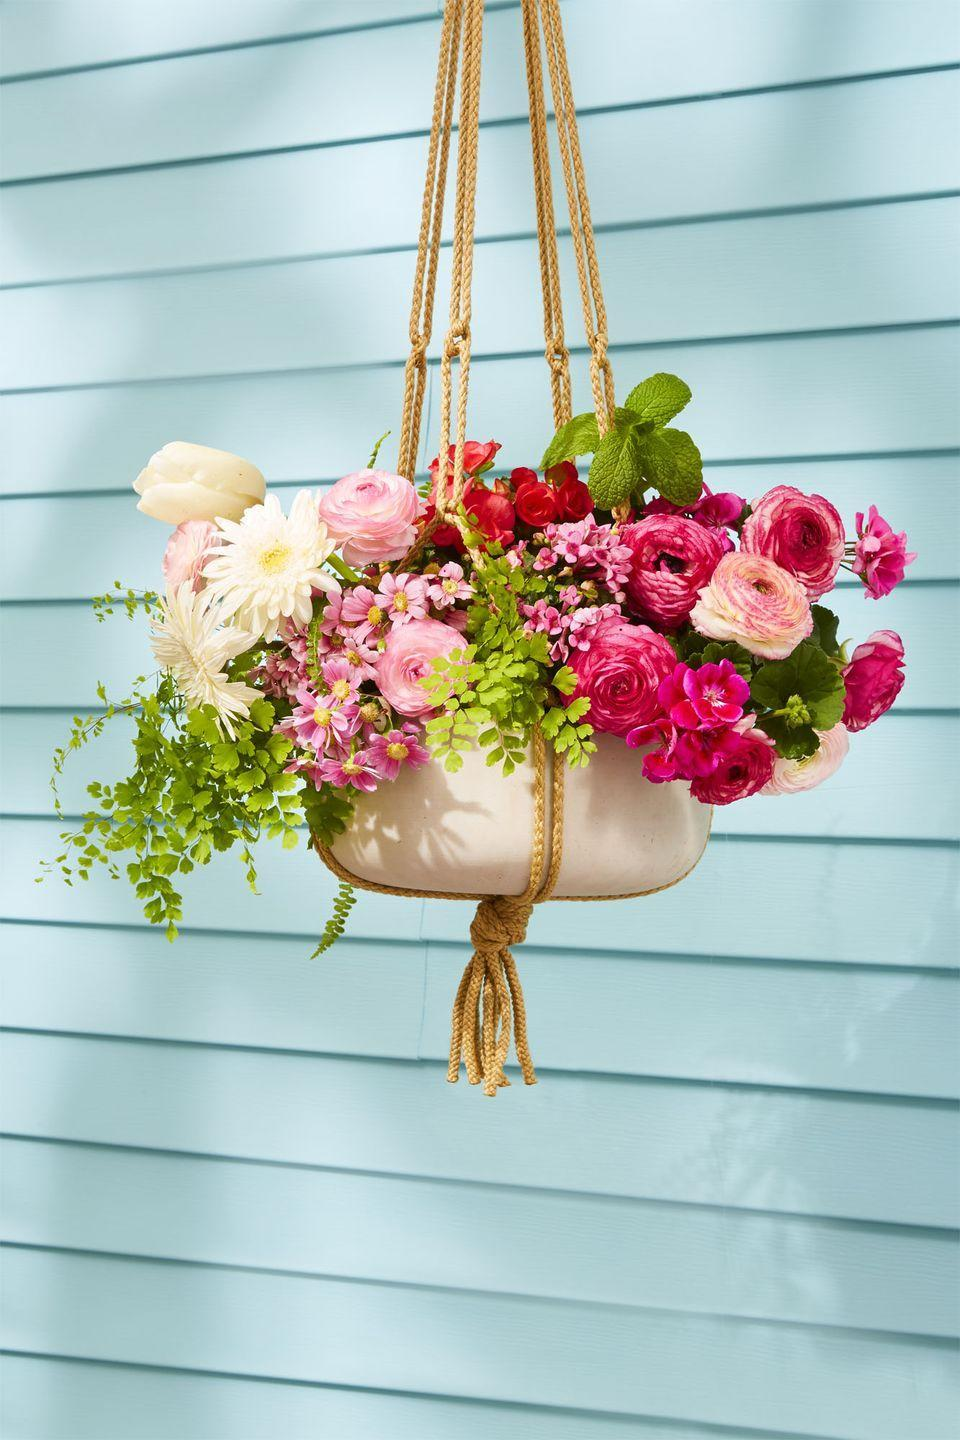 """<p>A pretty bouquet of flowers easily brightens any space. DIY your own hanging planter and attach it to your porch for a splash of color. <strong><strong><br></strong></strong></p><p><strong>RELATED: </strong><a href=""""https://www.goodhousekeeping.com/holidays/easter-ideas/g1906/easter-flowers/"""" rel=""""nofollow noopener"""" target=""""_blank"""" data-ylk=""""slk:Stunning Ways to Decorate With Flowers This Easter"""" class=""""link rapid-noclick-resp"""">Stunning Ways to Decorate With Flowers This Easter</a></p>"""